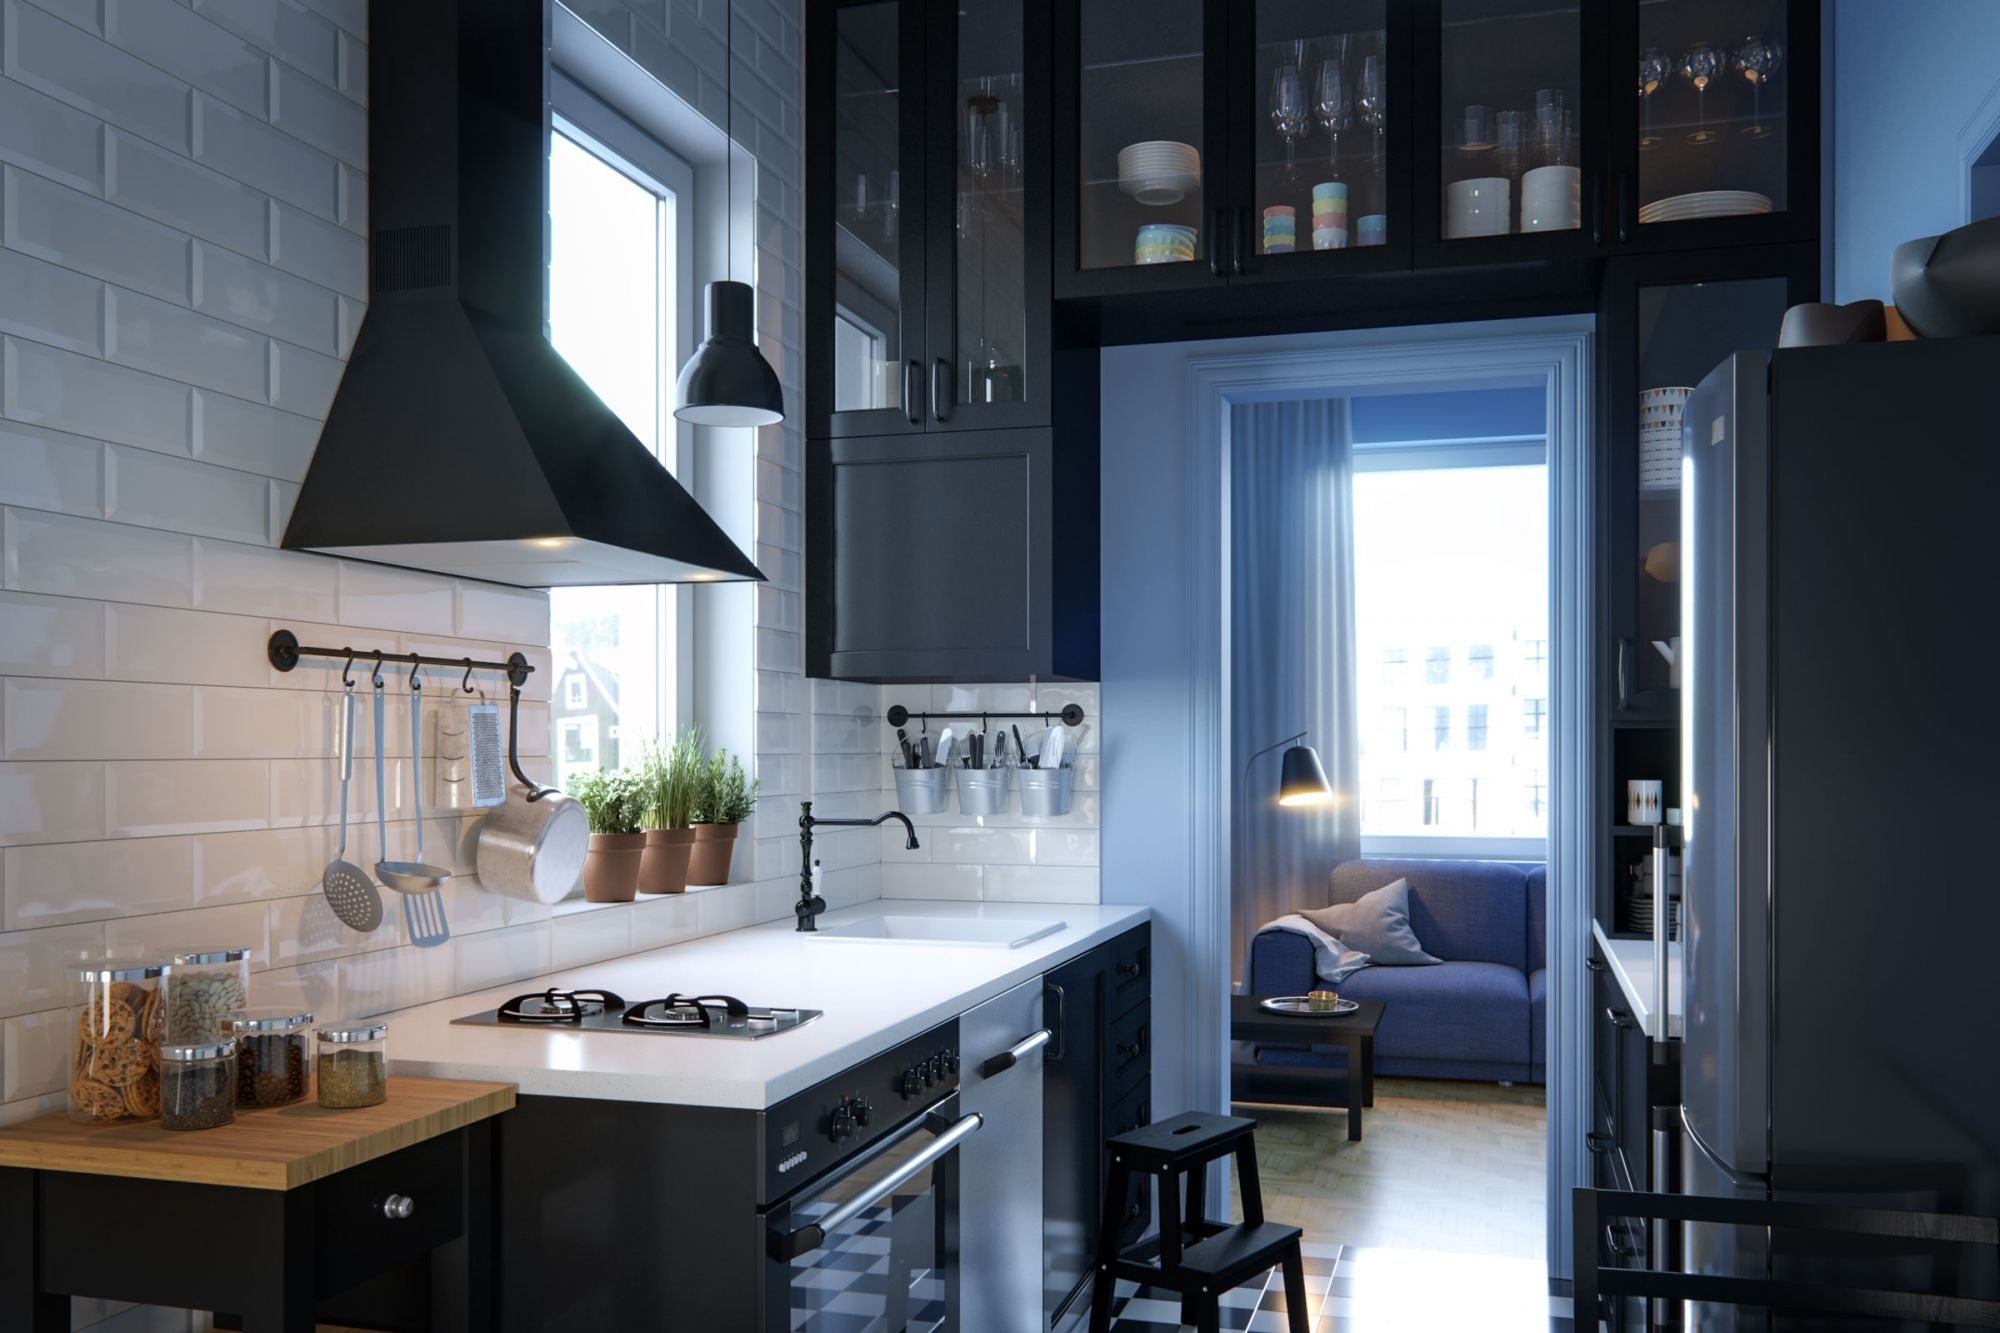 Lovable ikea kitchen catalog as cgarchitect professional 3d architectural visualization user - Inspiring Home Ideas